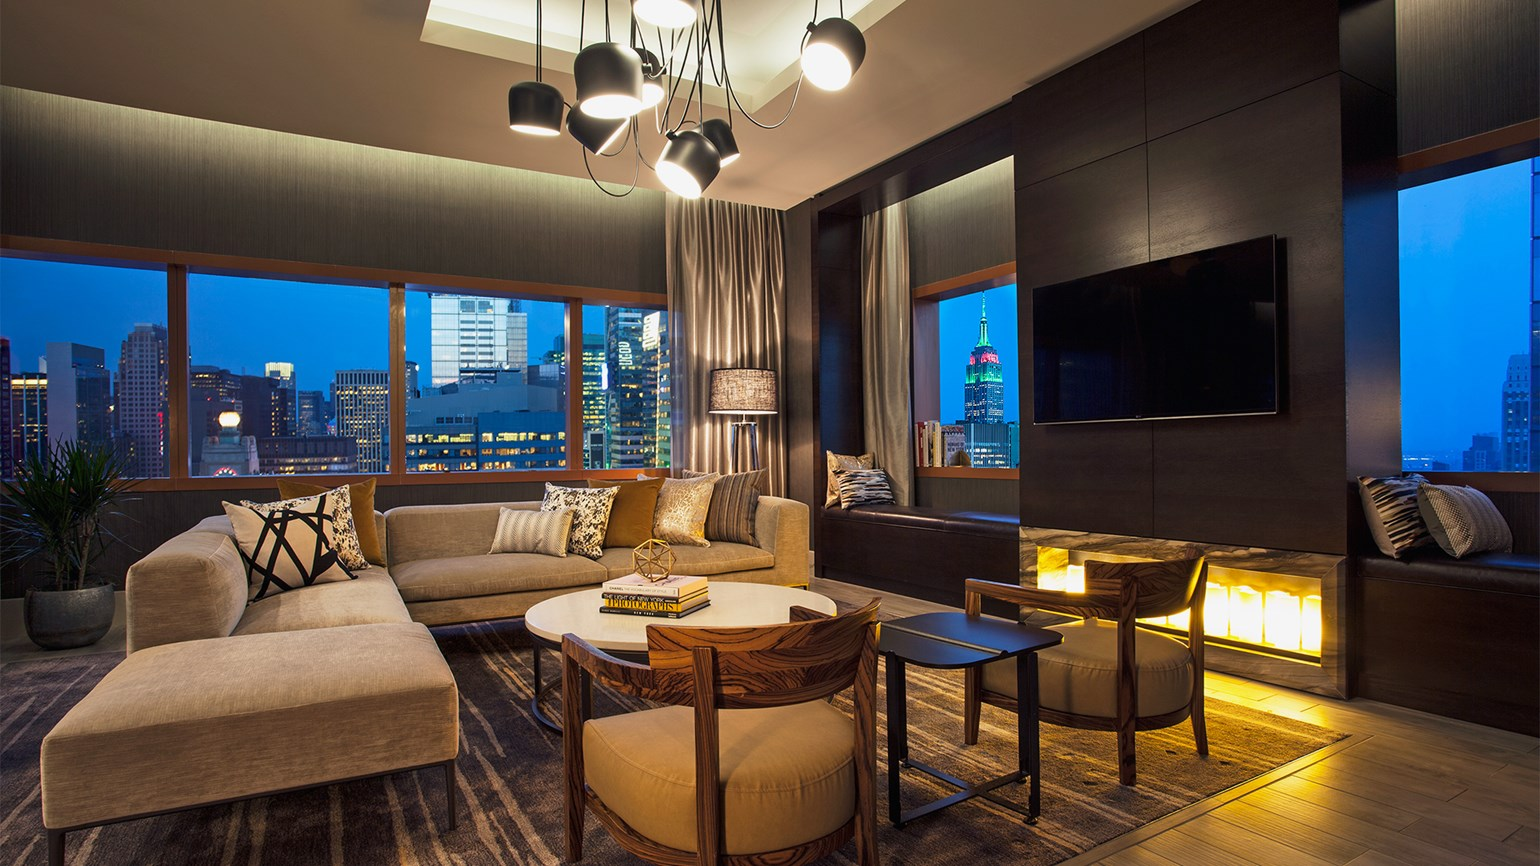 Westin new york at times square completes renovation for Best boutique hotels nyc 2016